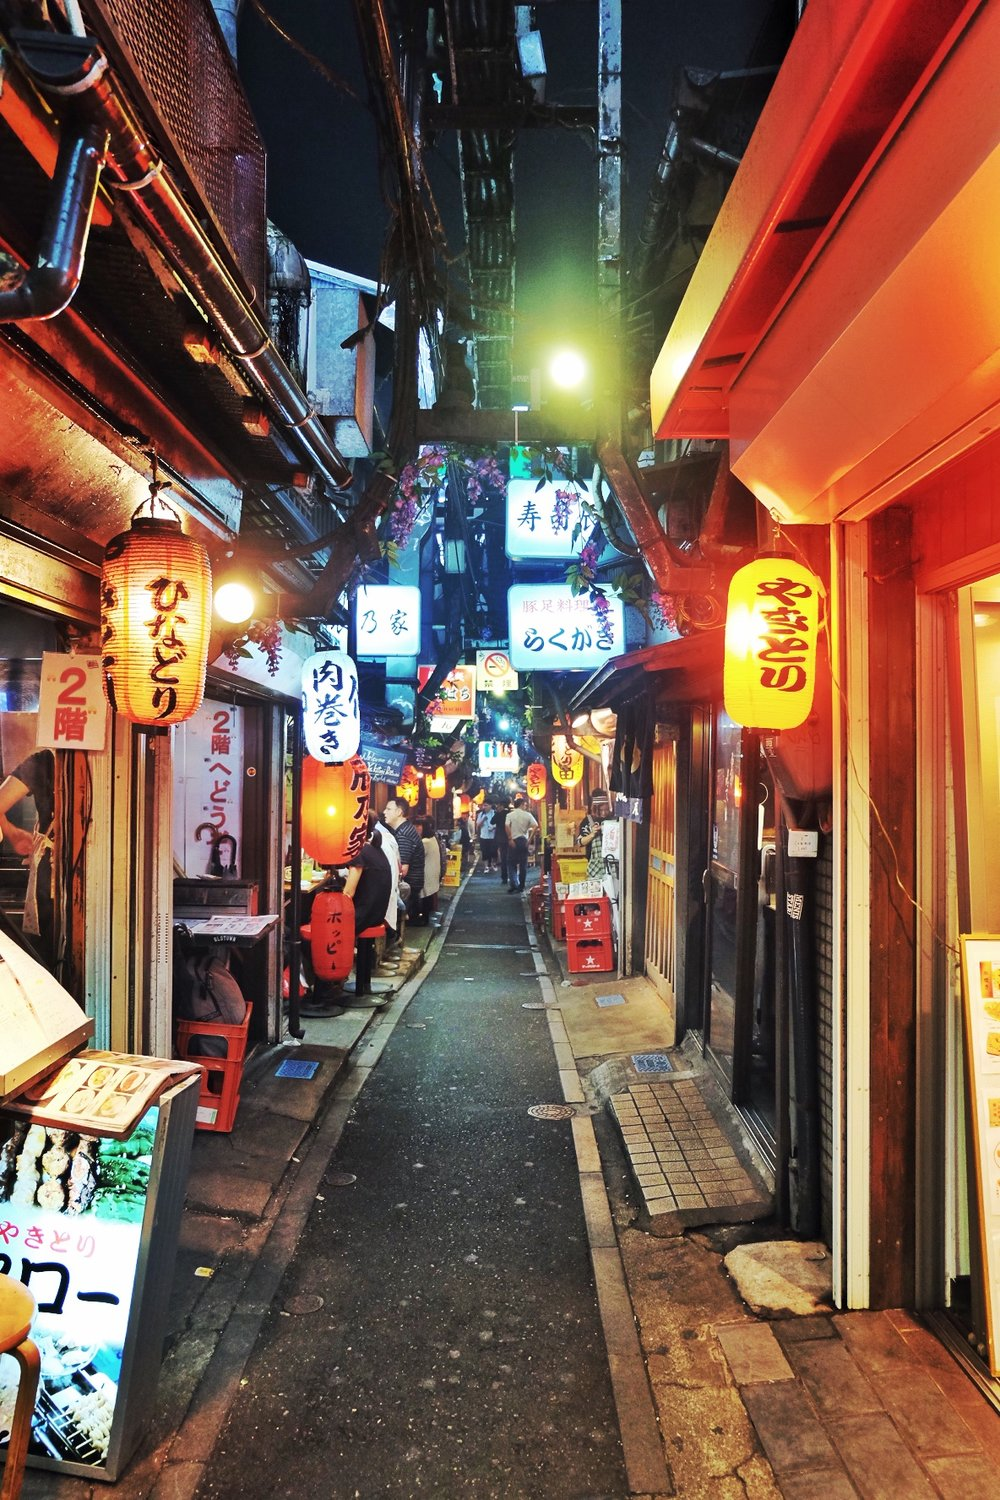 Piss Alley in Shinjinku